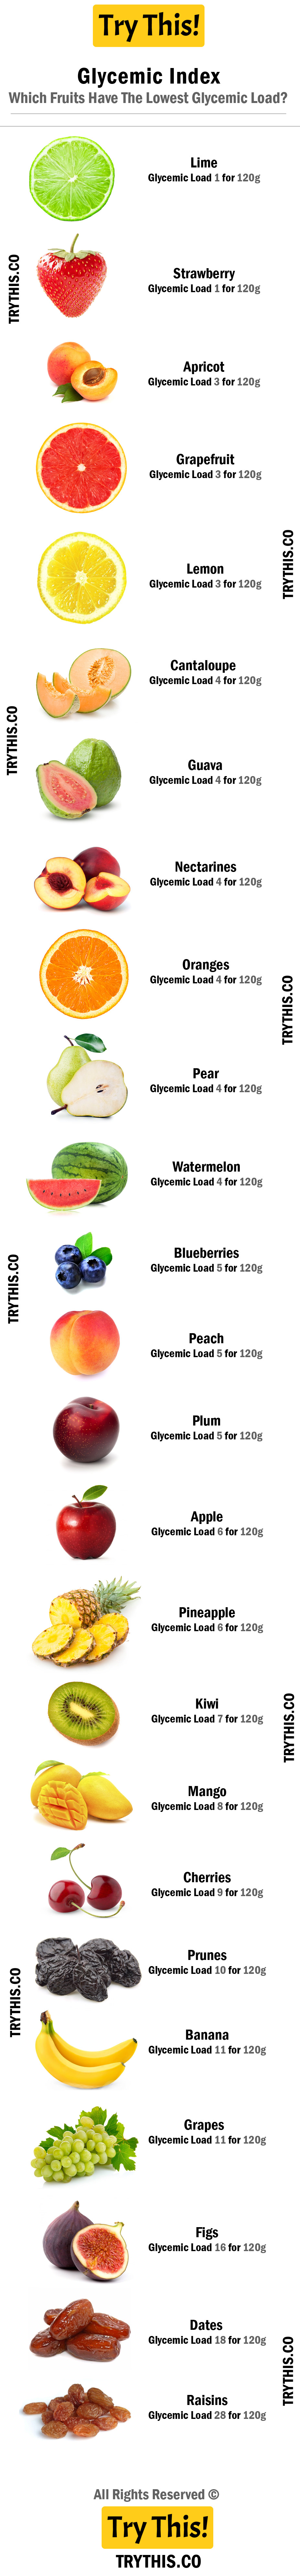 Glycemic Index: Which Fruits Have The Lowest Glycemic Load?